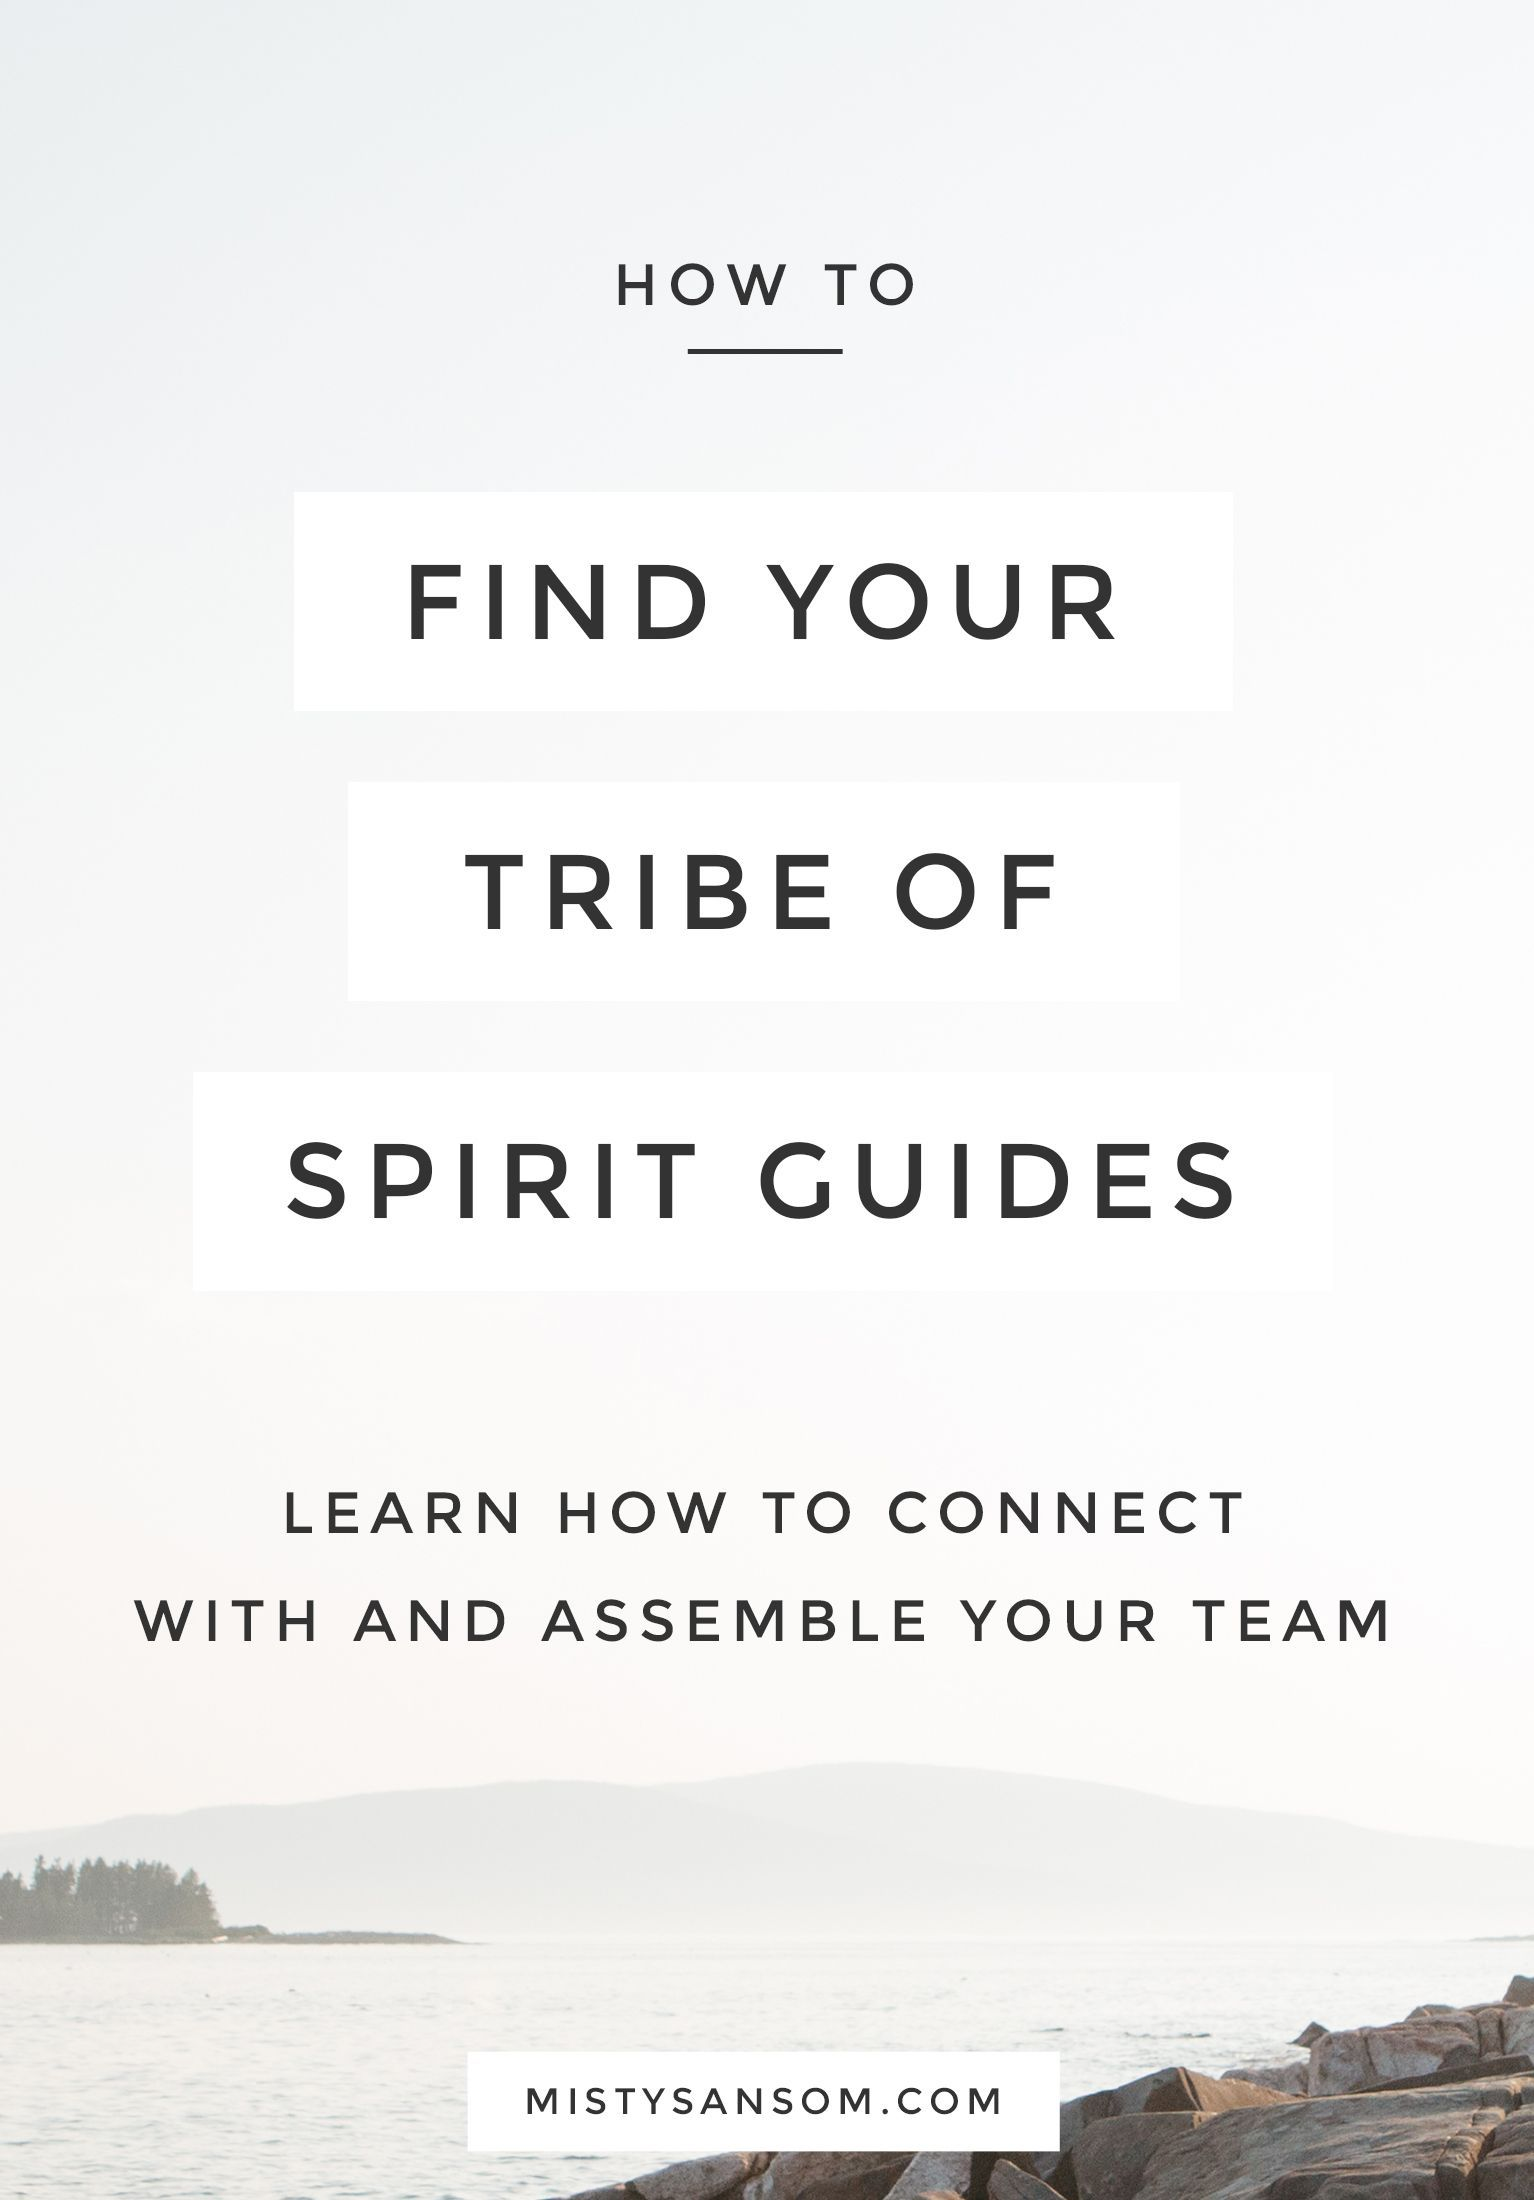 How to connect with your spirit guides (With images ...